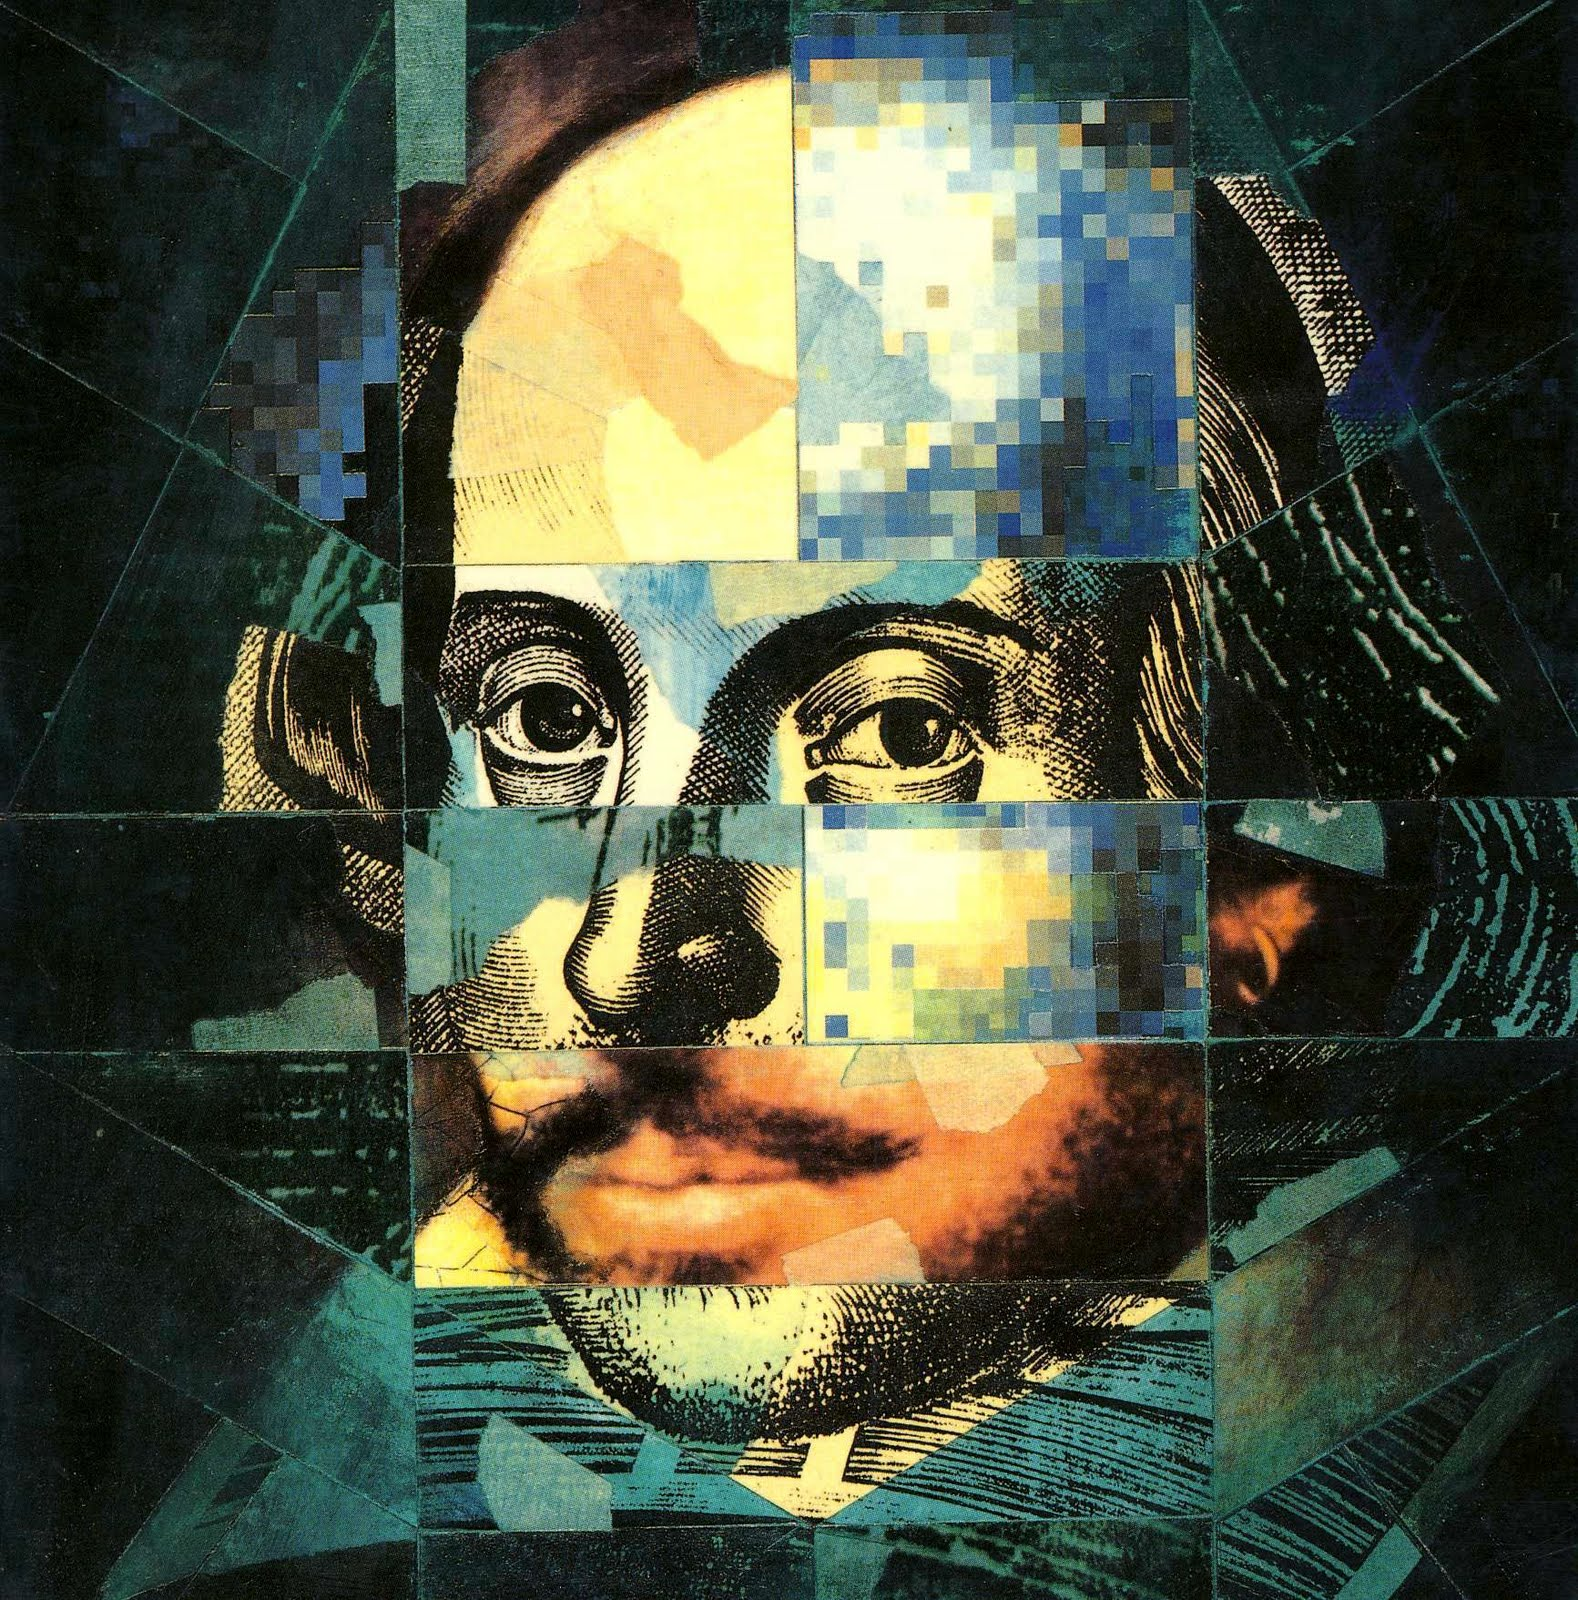 the life of william shakespeare one of the greatest playwright of all time William shakespeare (1564–1616) was an english playwright, poet, and actor  who lived during  many people think shakespeare was the greatest playwright  in history  contagious disease that was sweeping through europe at that time   the globe welcomed people of all social classes, not just nobles and  aristocrats.